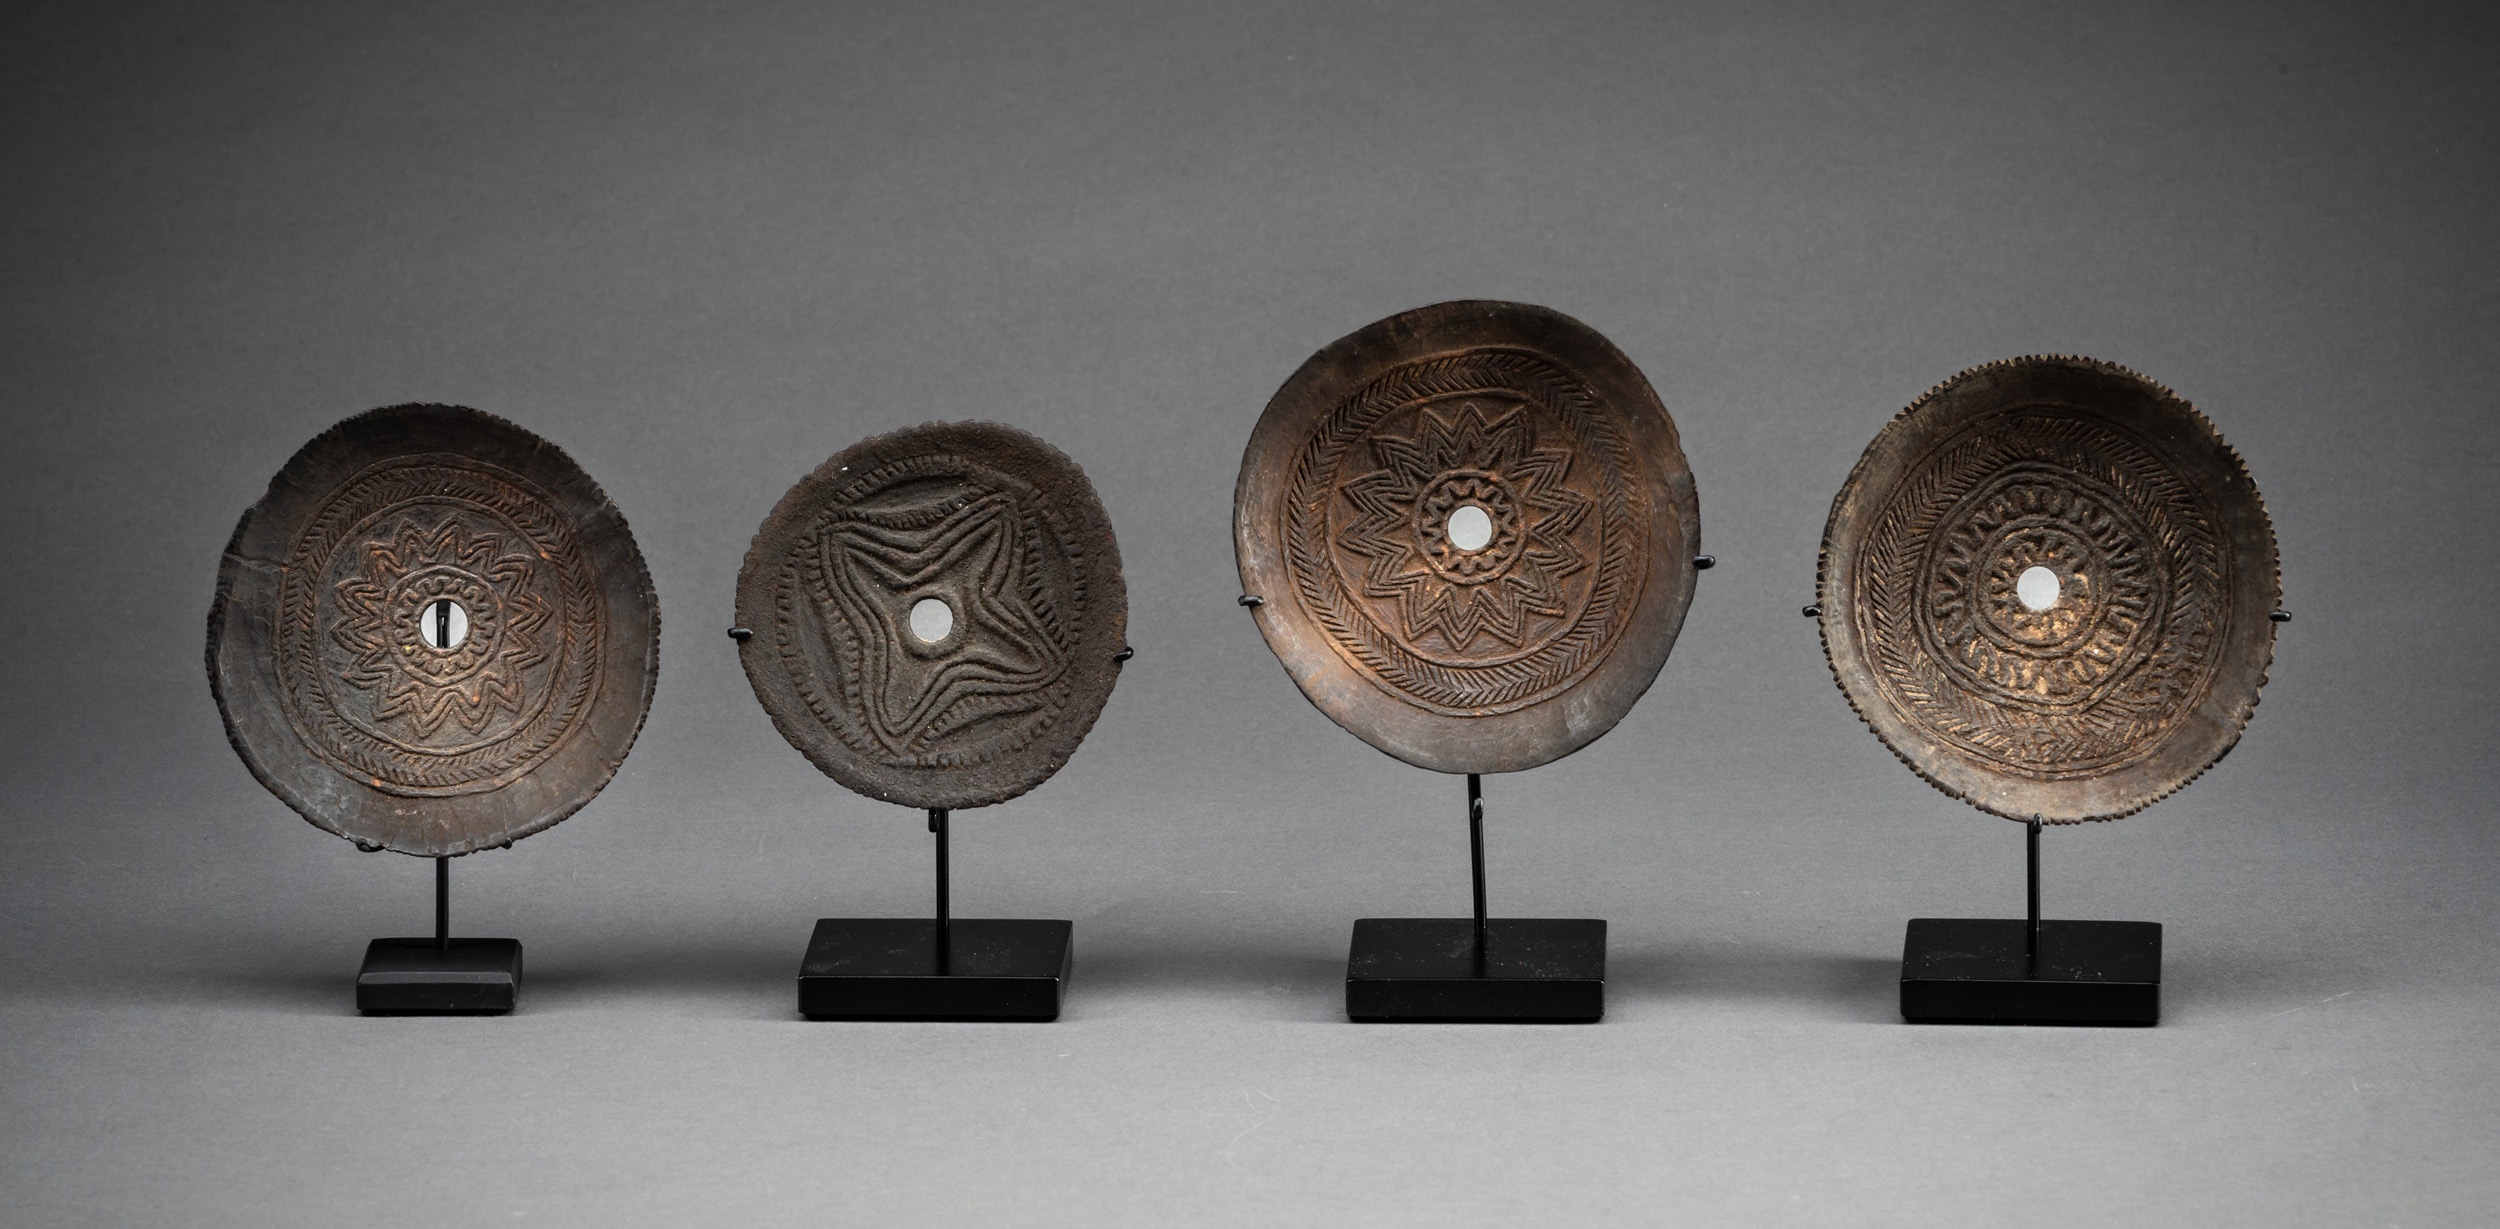 A Collection of Four Abelam Coconut Spining Tops, East Sepik Province, Papua New Guinea, Early 20th Century